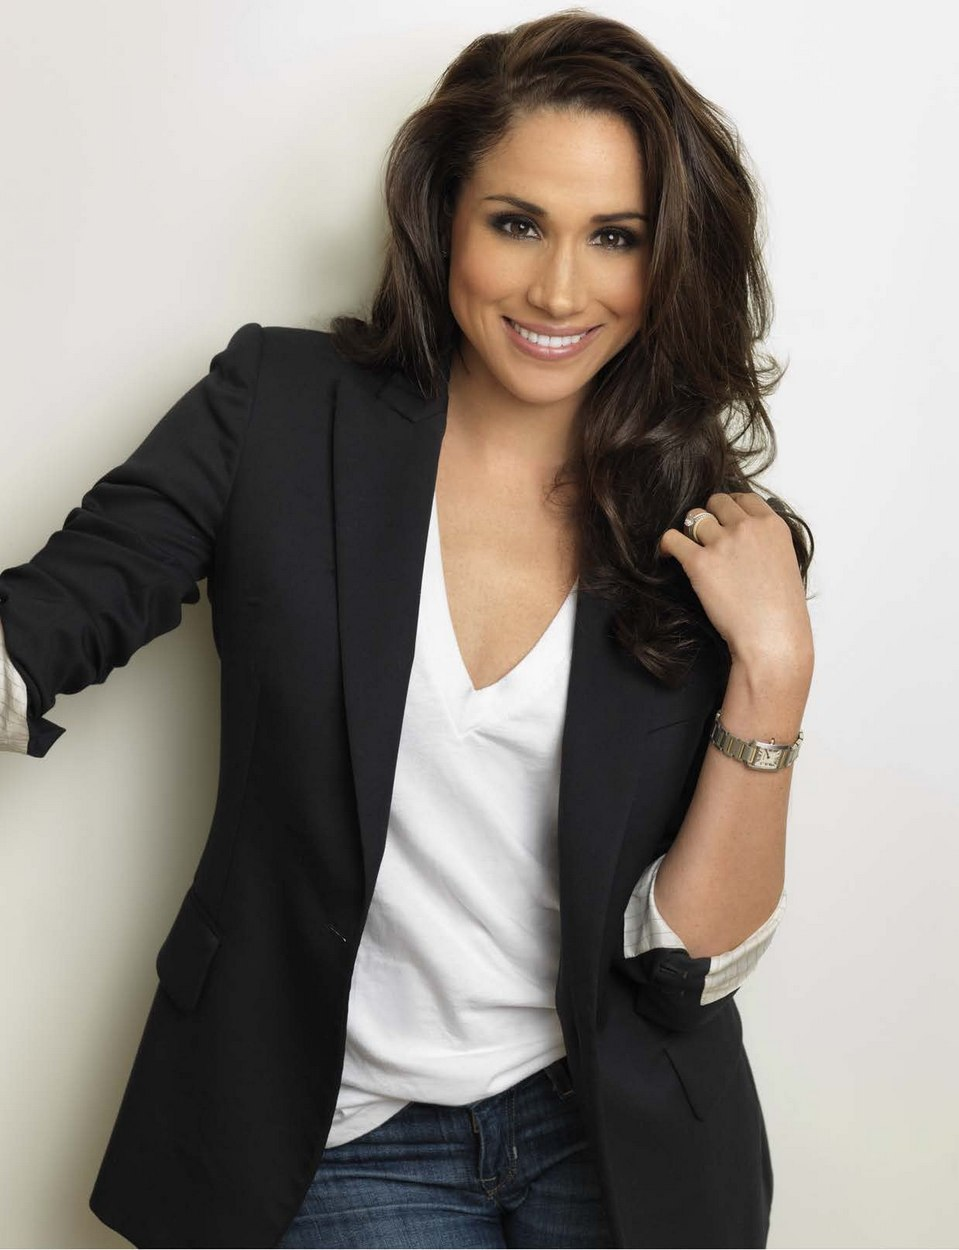 Meghan Markle Iphone Sexy Wallpapers